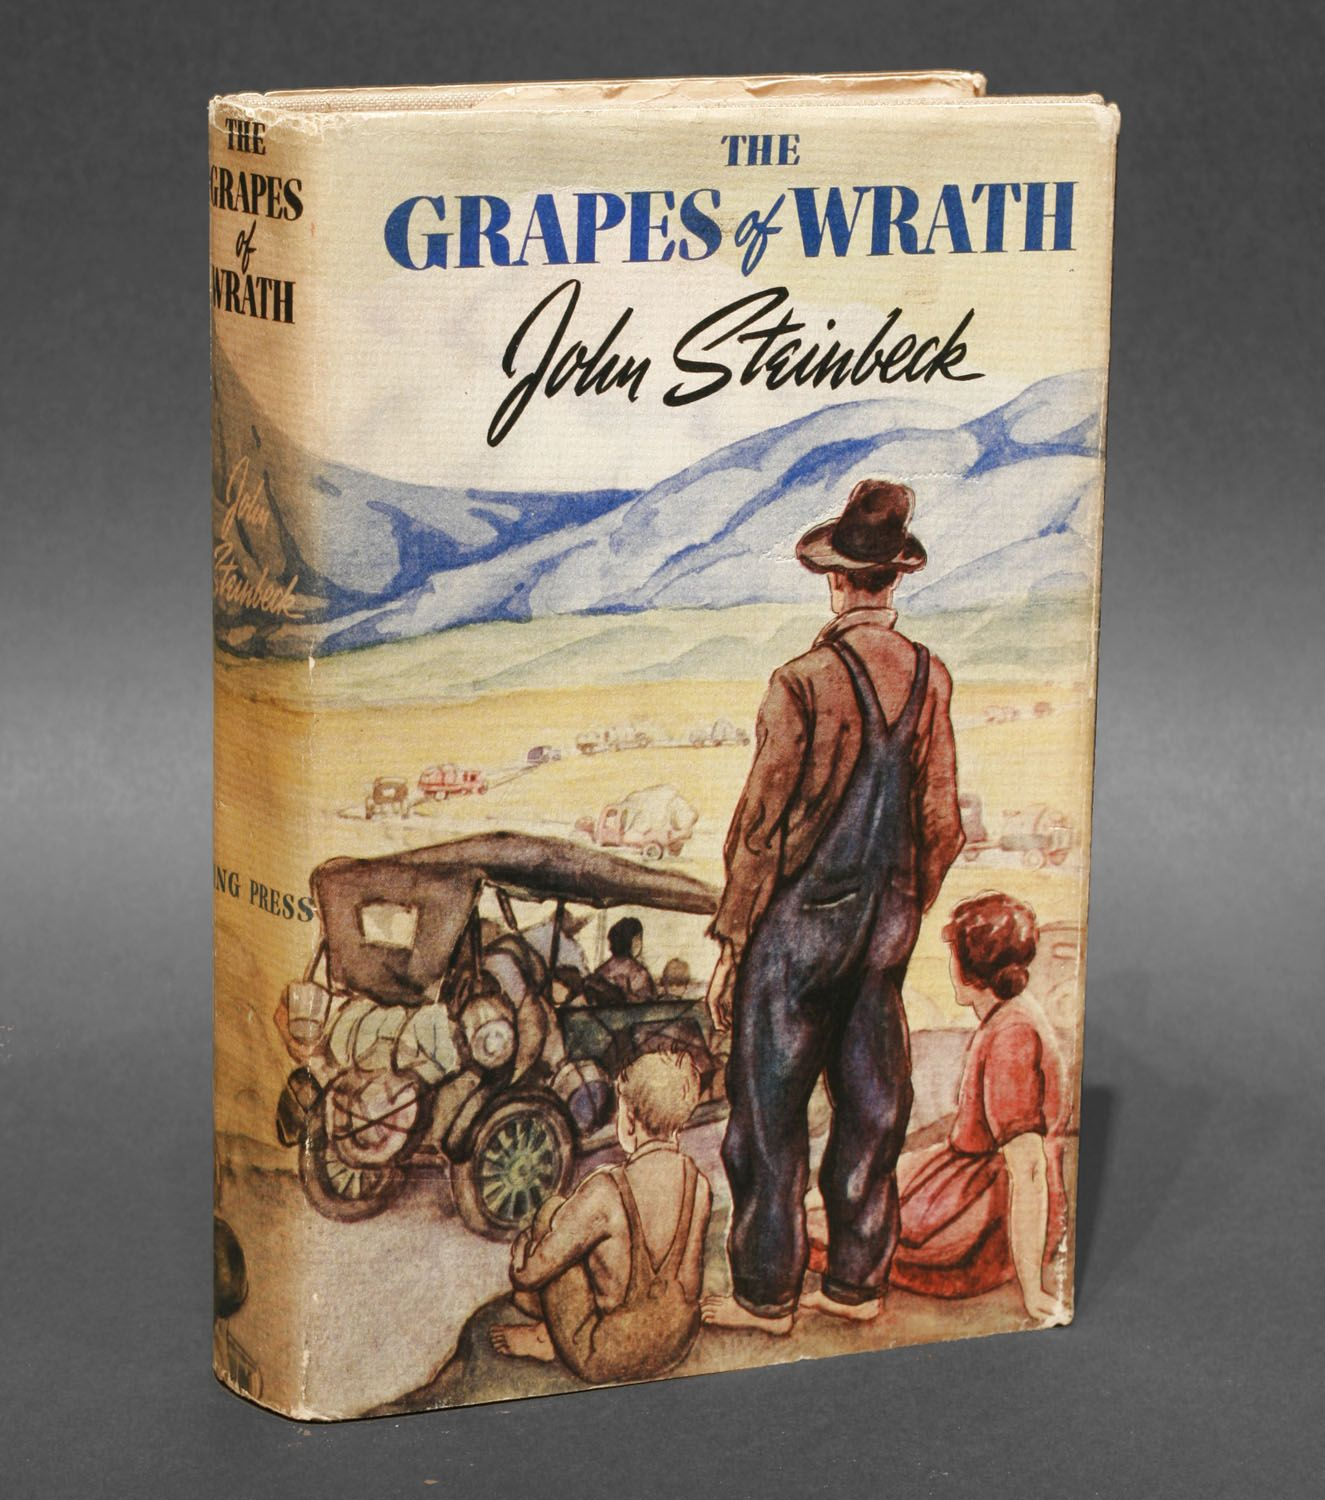 I need to write an essay on The Grapes of Wrath by John Steinbeck, please help!?